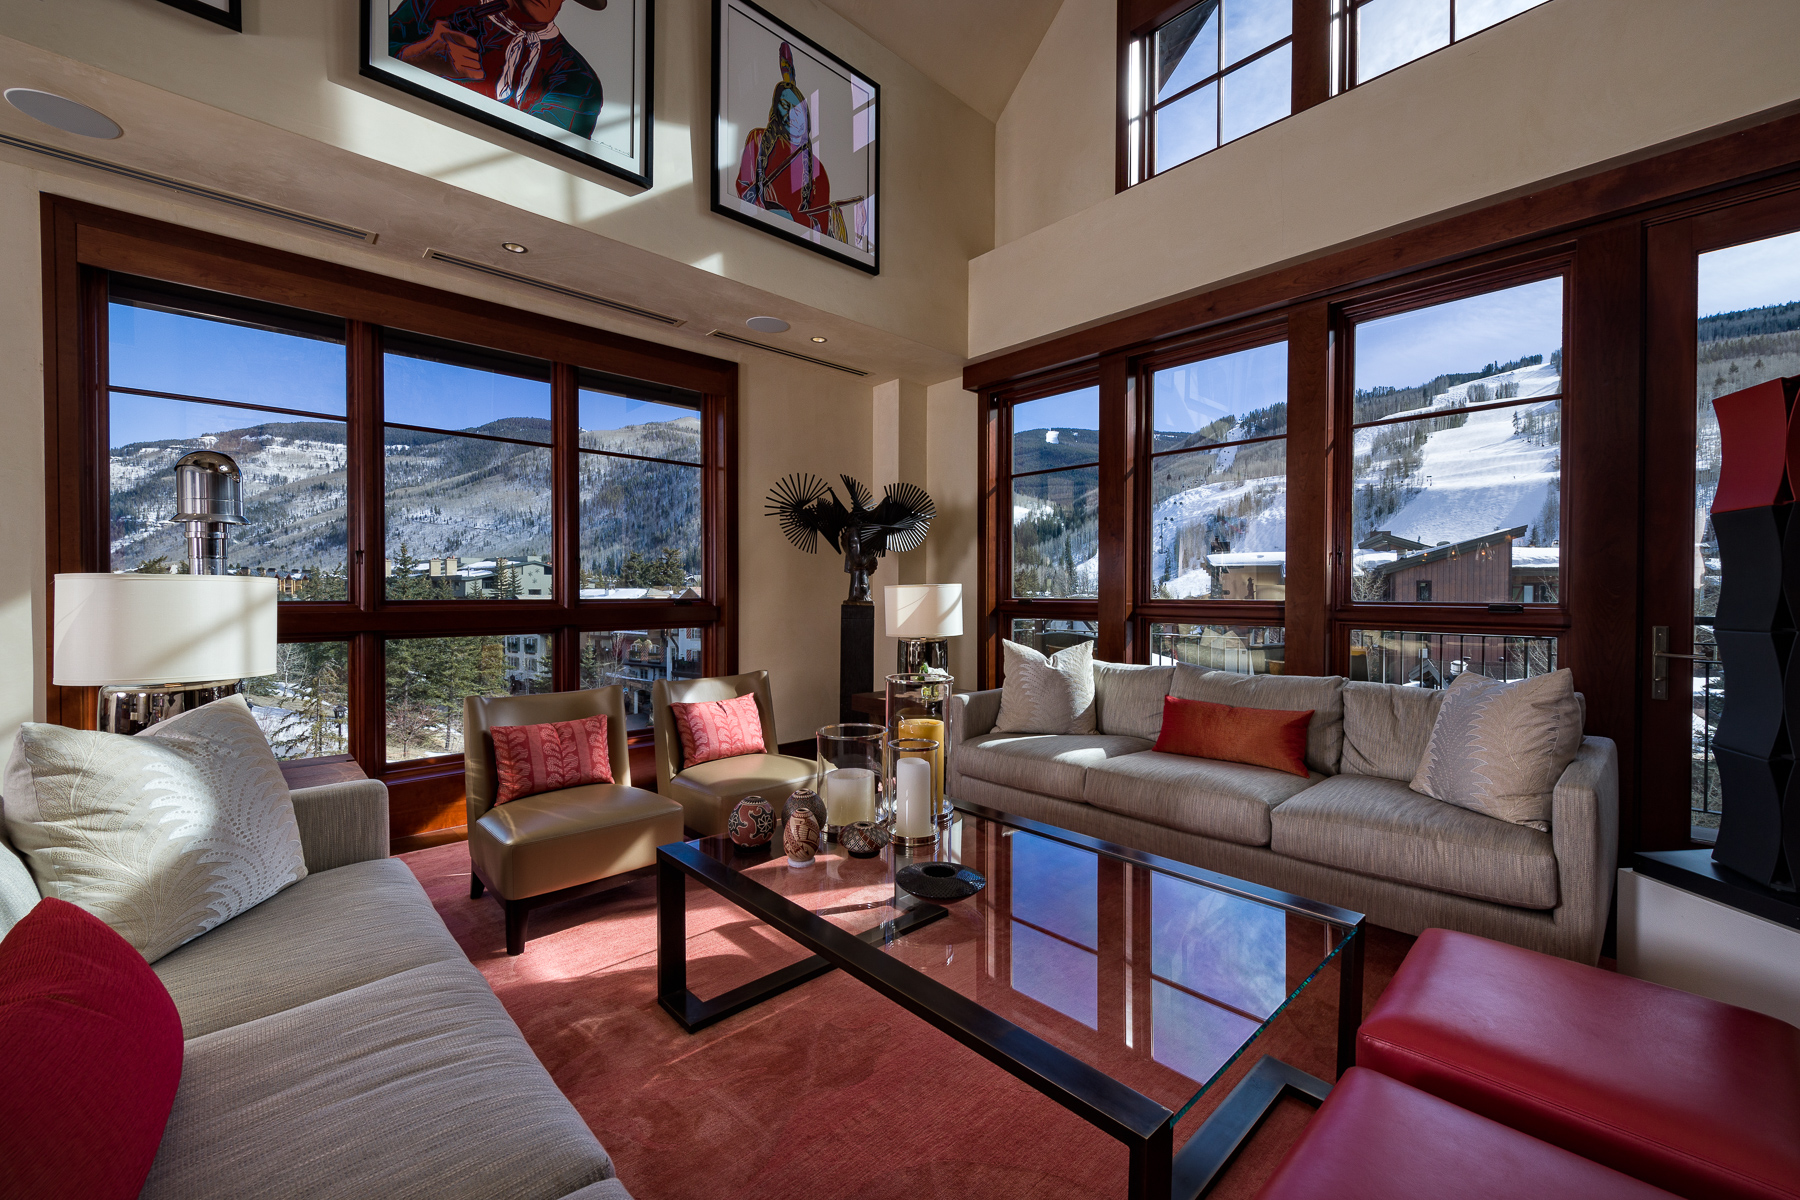 Condomínio para Venda às Magnificent Solaris Penthouse 141 E. Meadow Drive #PHHE Vail Village, Vail, Colorado, 81657 Estados Unidos